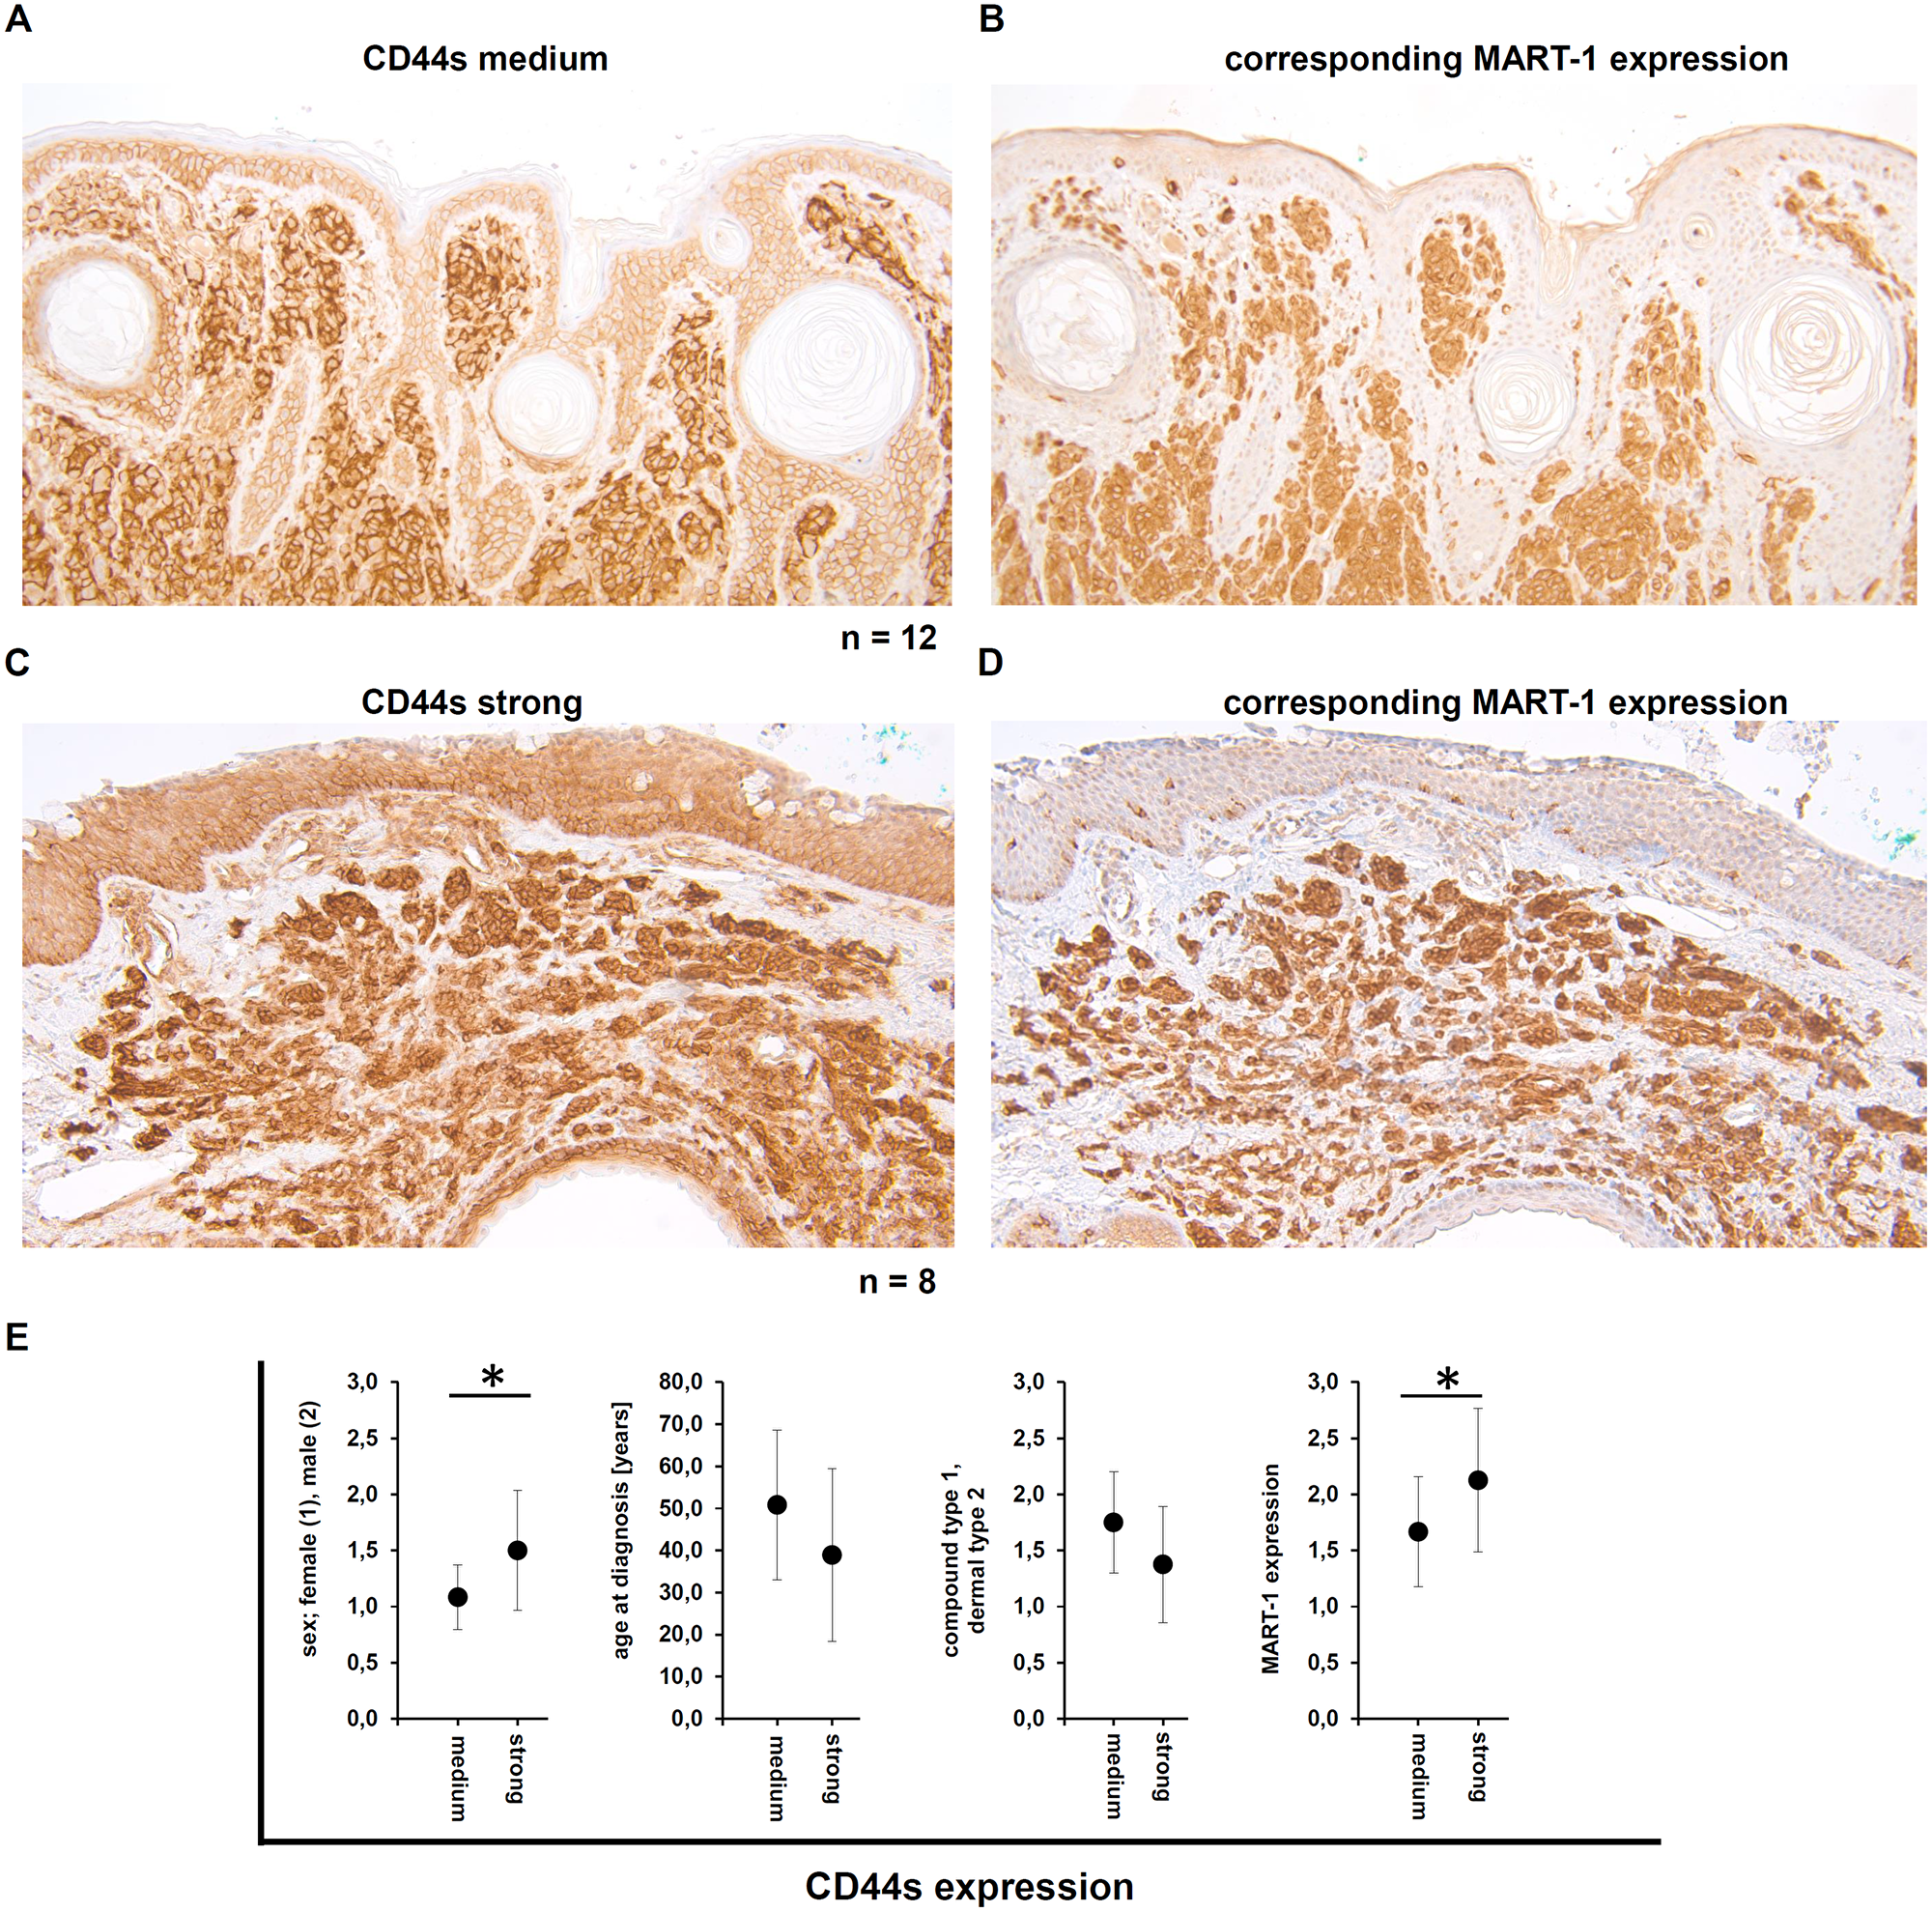 Demonstration of the CD44s and the corresponding MART-1 expression in human melanocytic nevi.